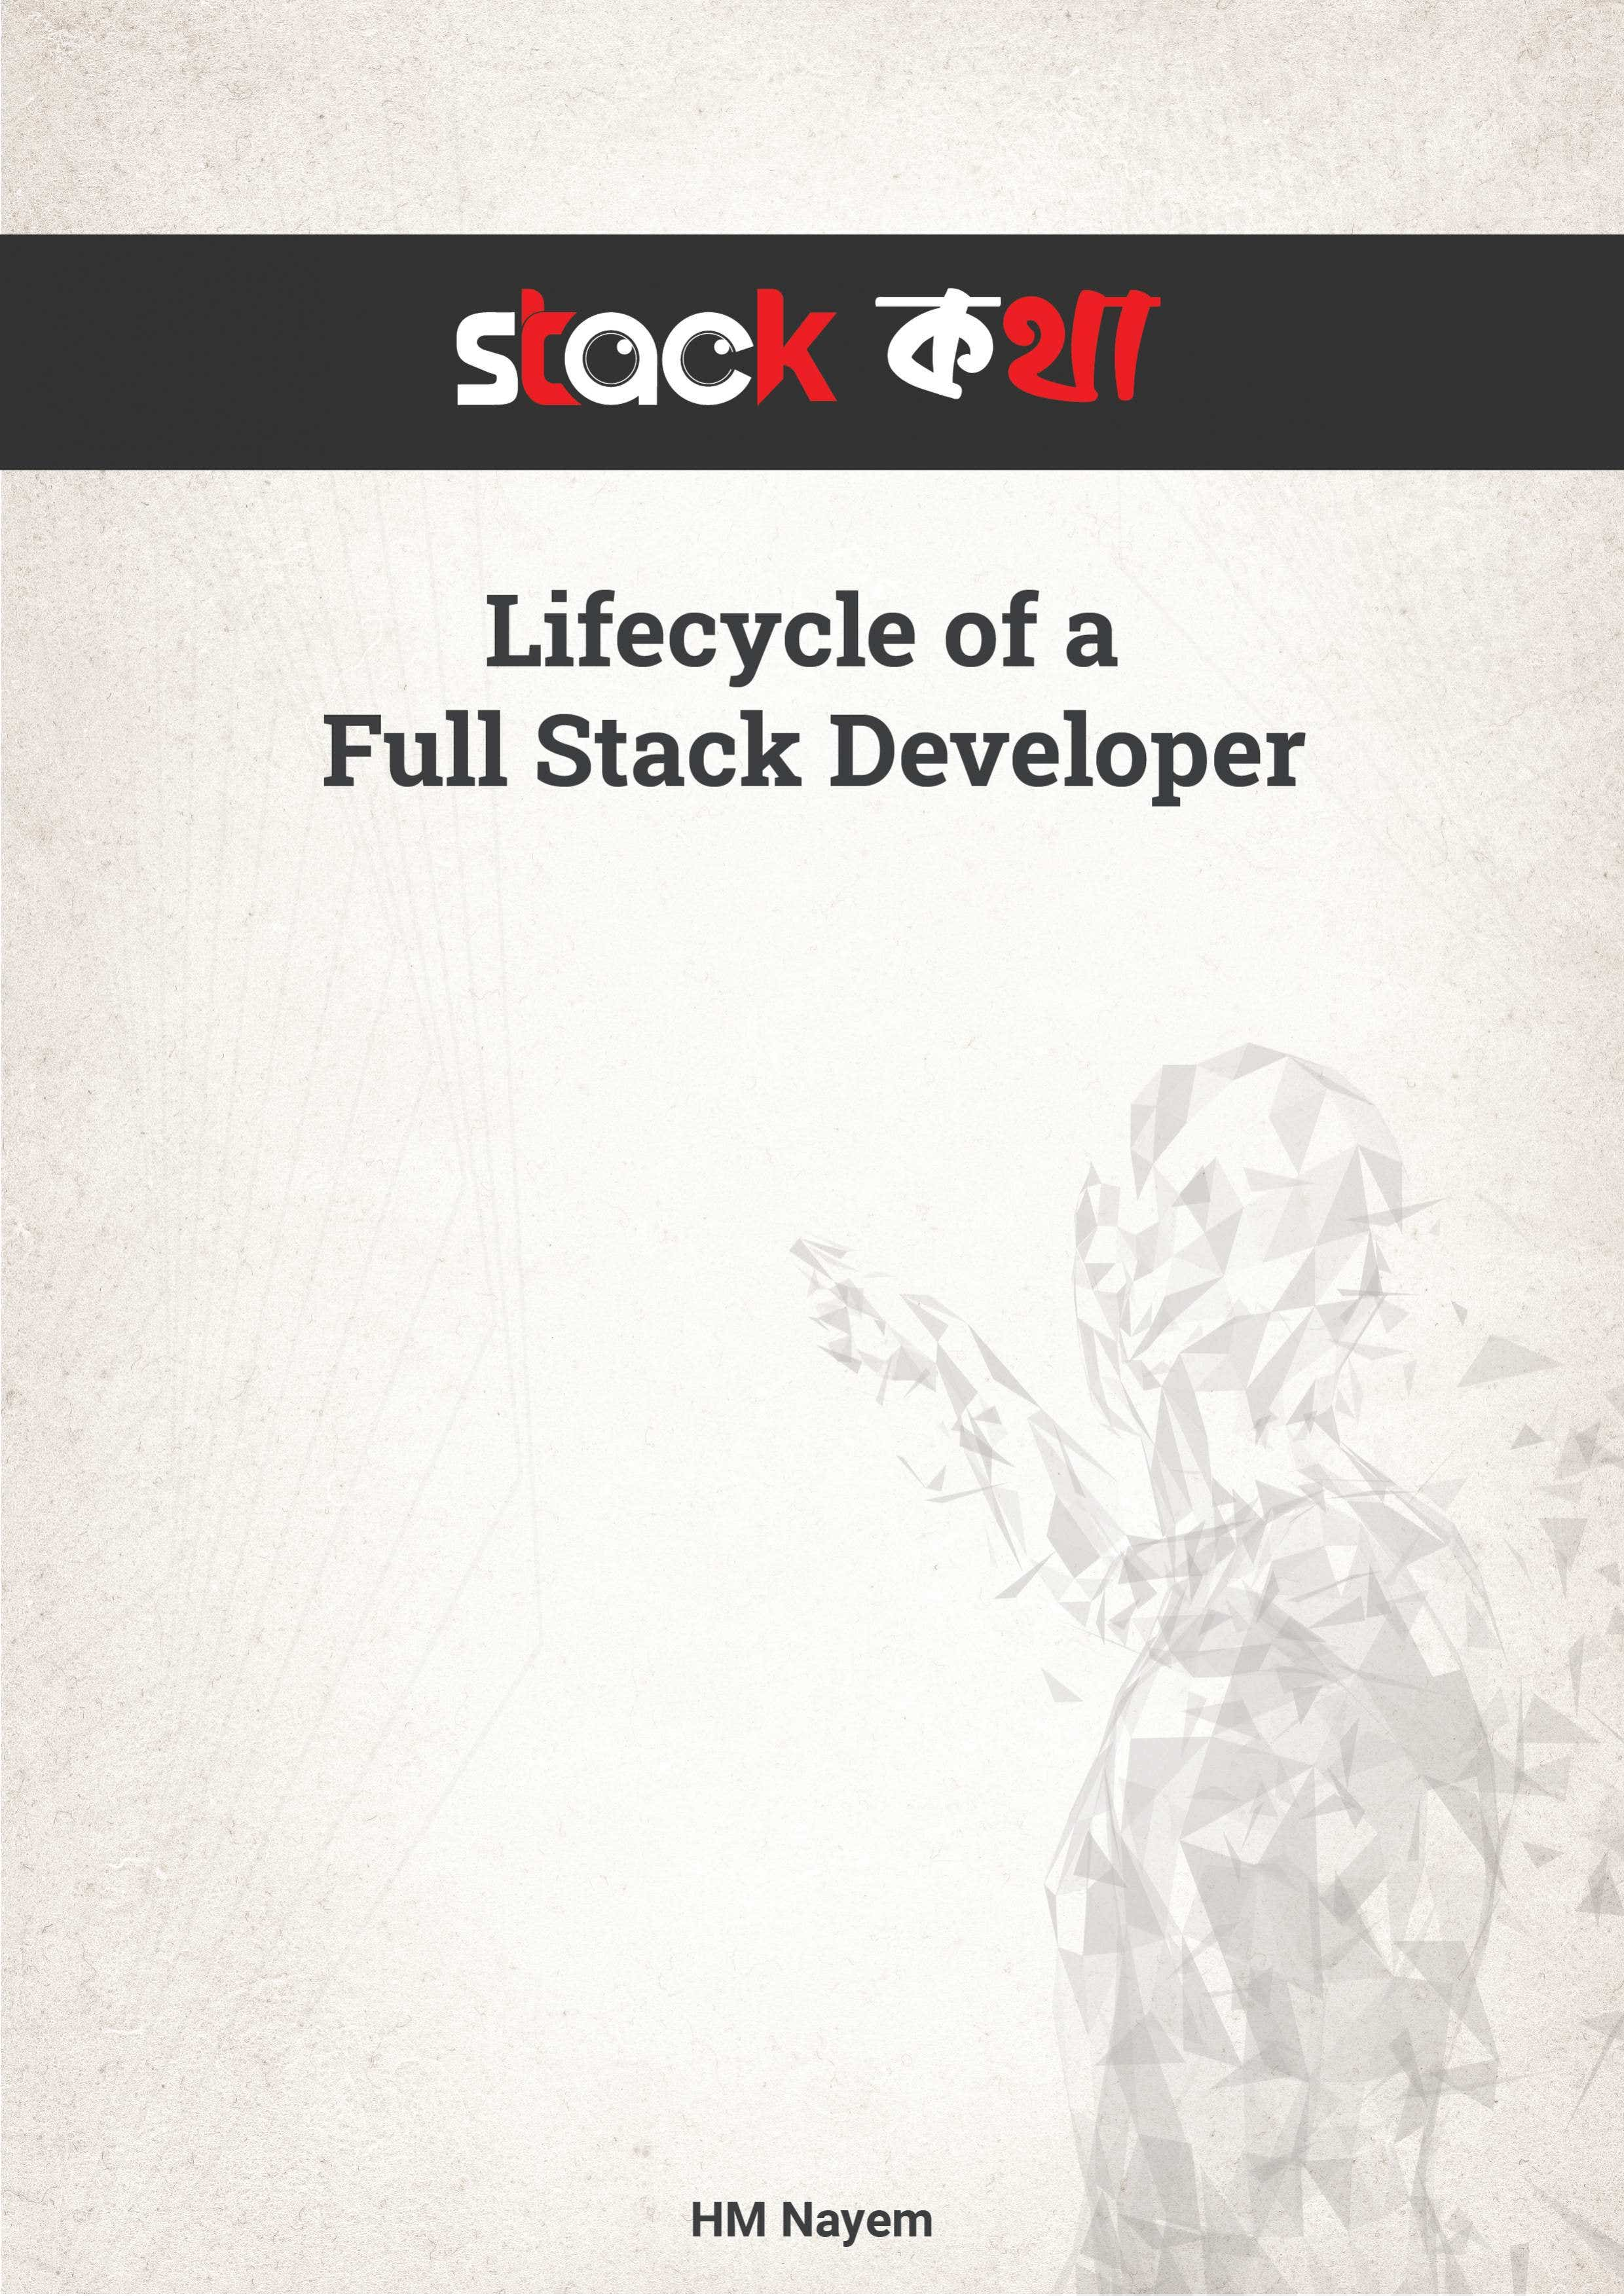 Stack Kotha - Lifecycle of A Full Stack Developer